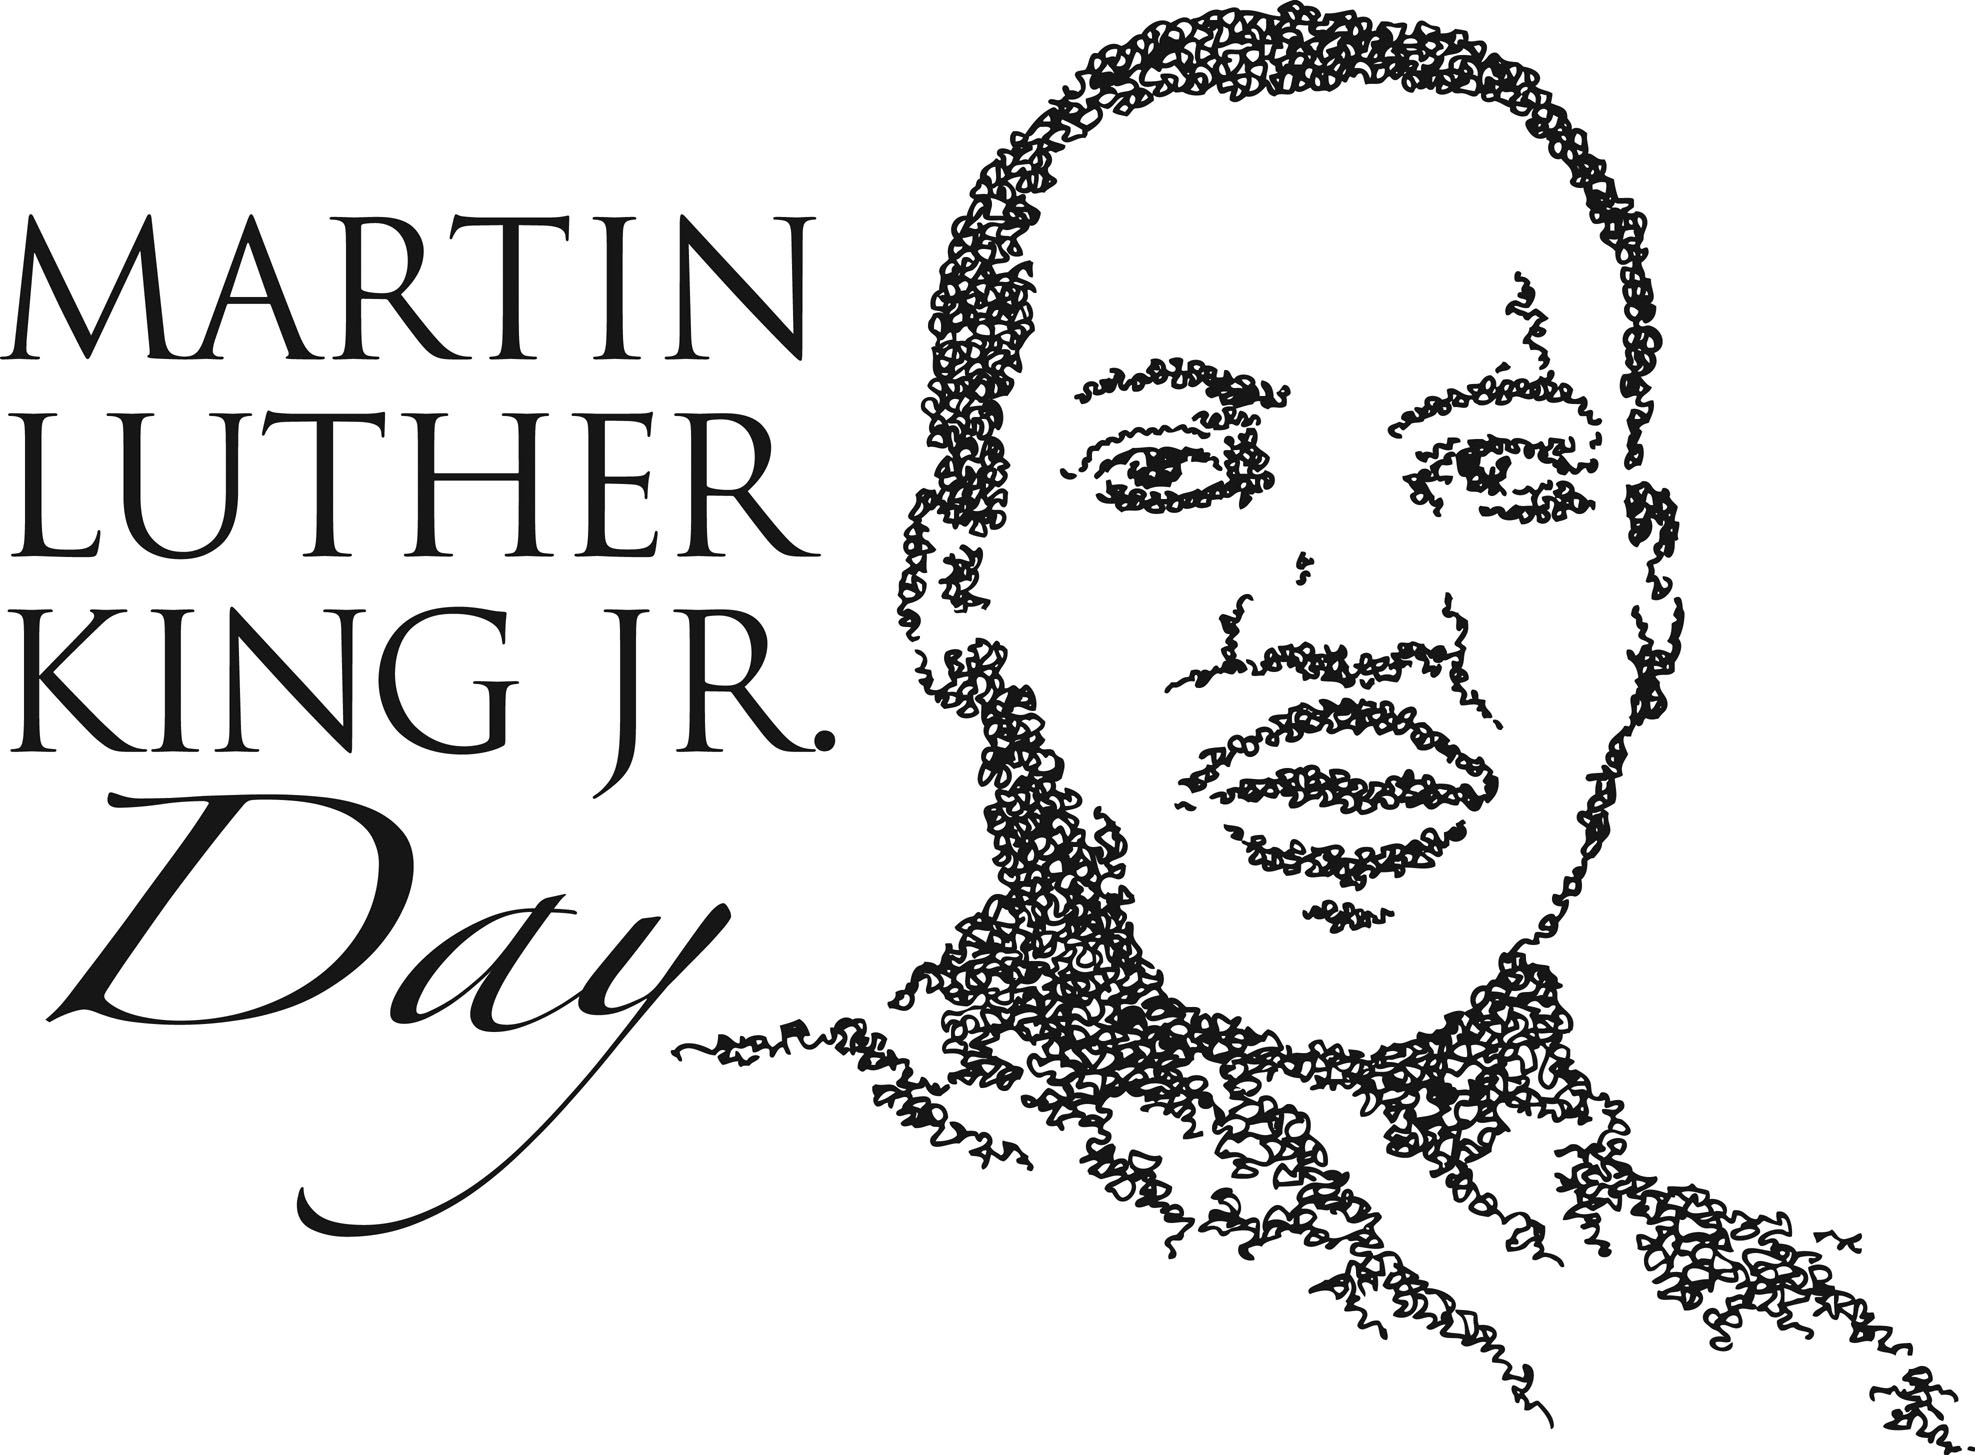 martin luther king jr day clipart mlkday 7613 mascoutah public library